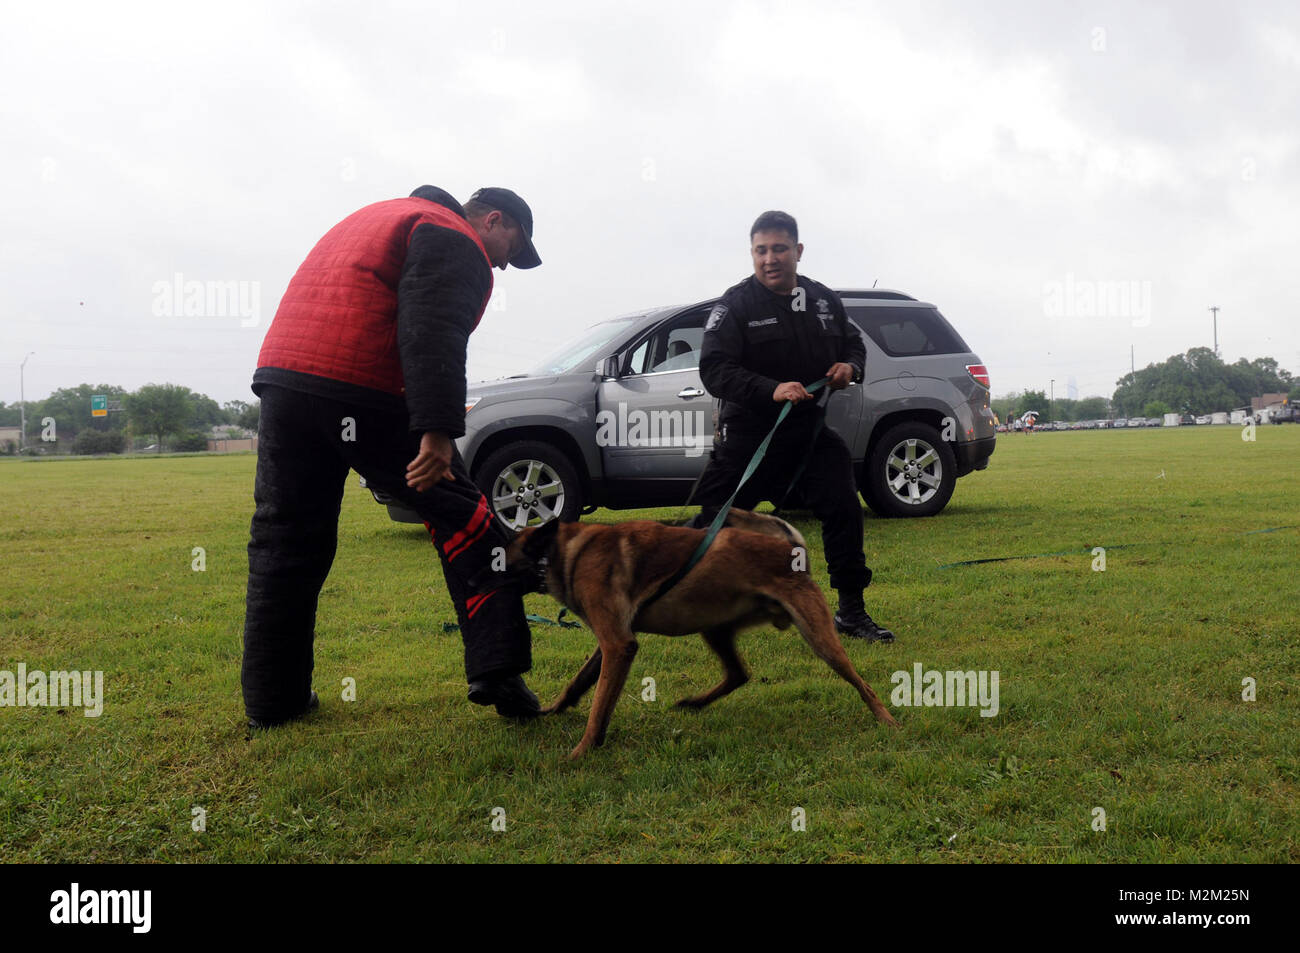 Miletonde, a German Shepherd, subdues this tricky suspect as Travis County Deputy Gilbert A. Hernandez gives commands. - Stock Image